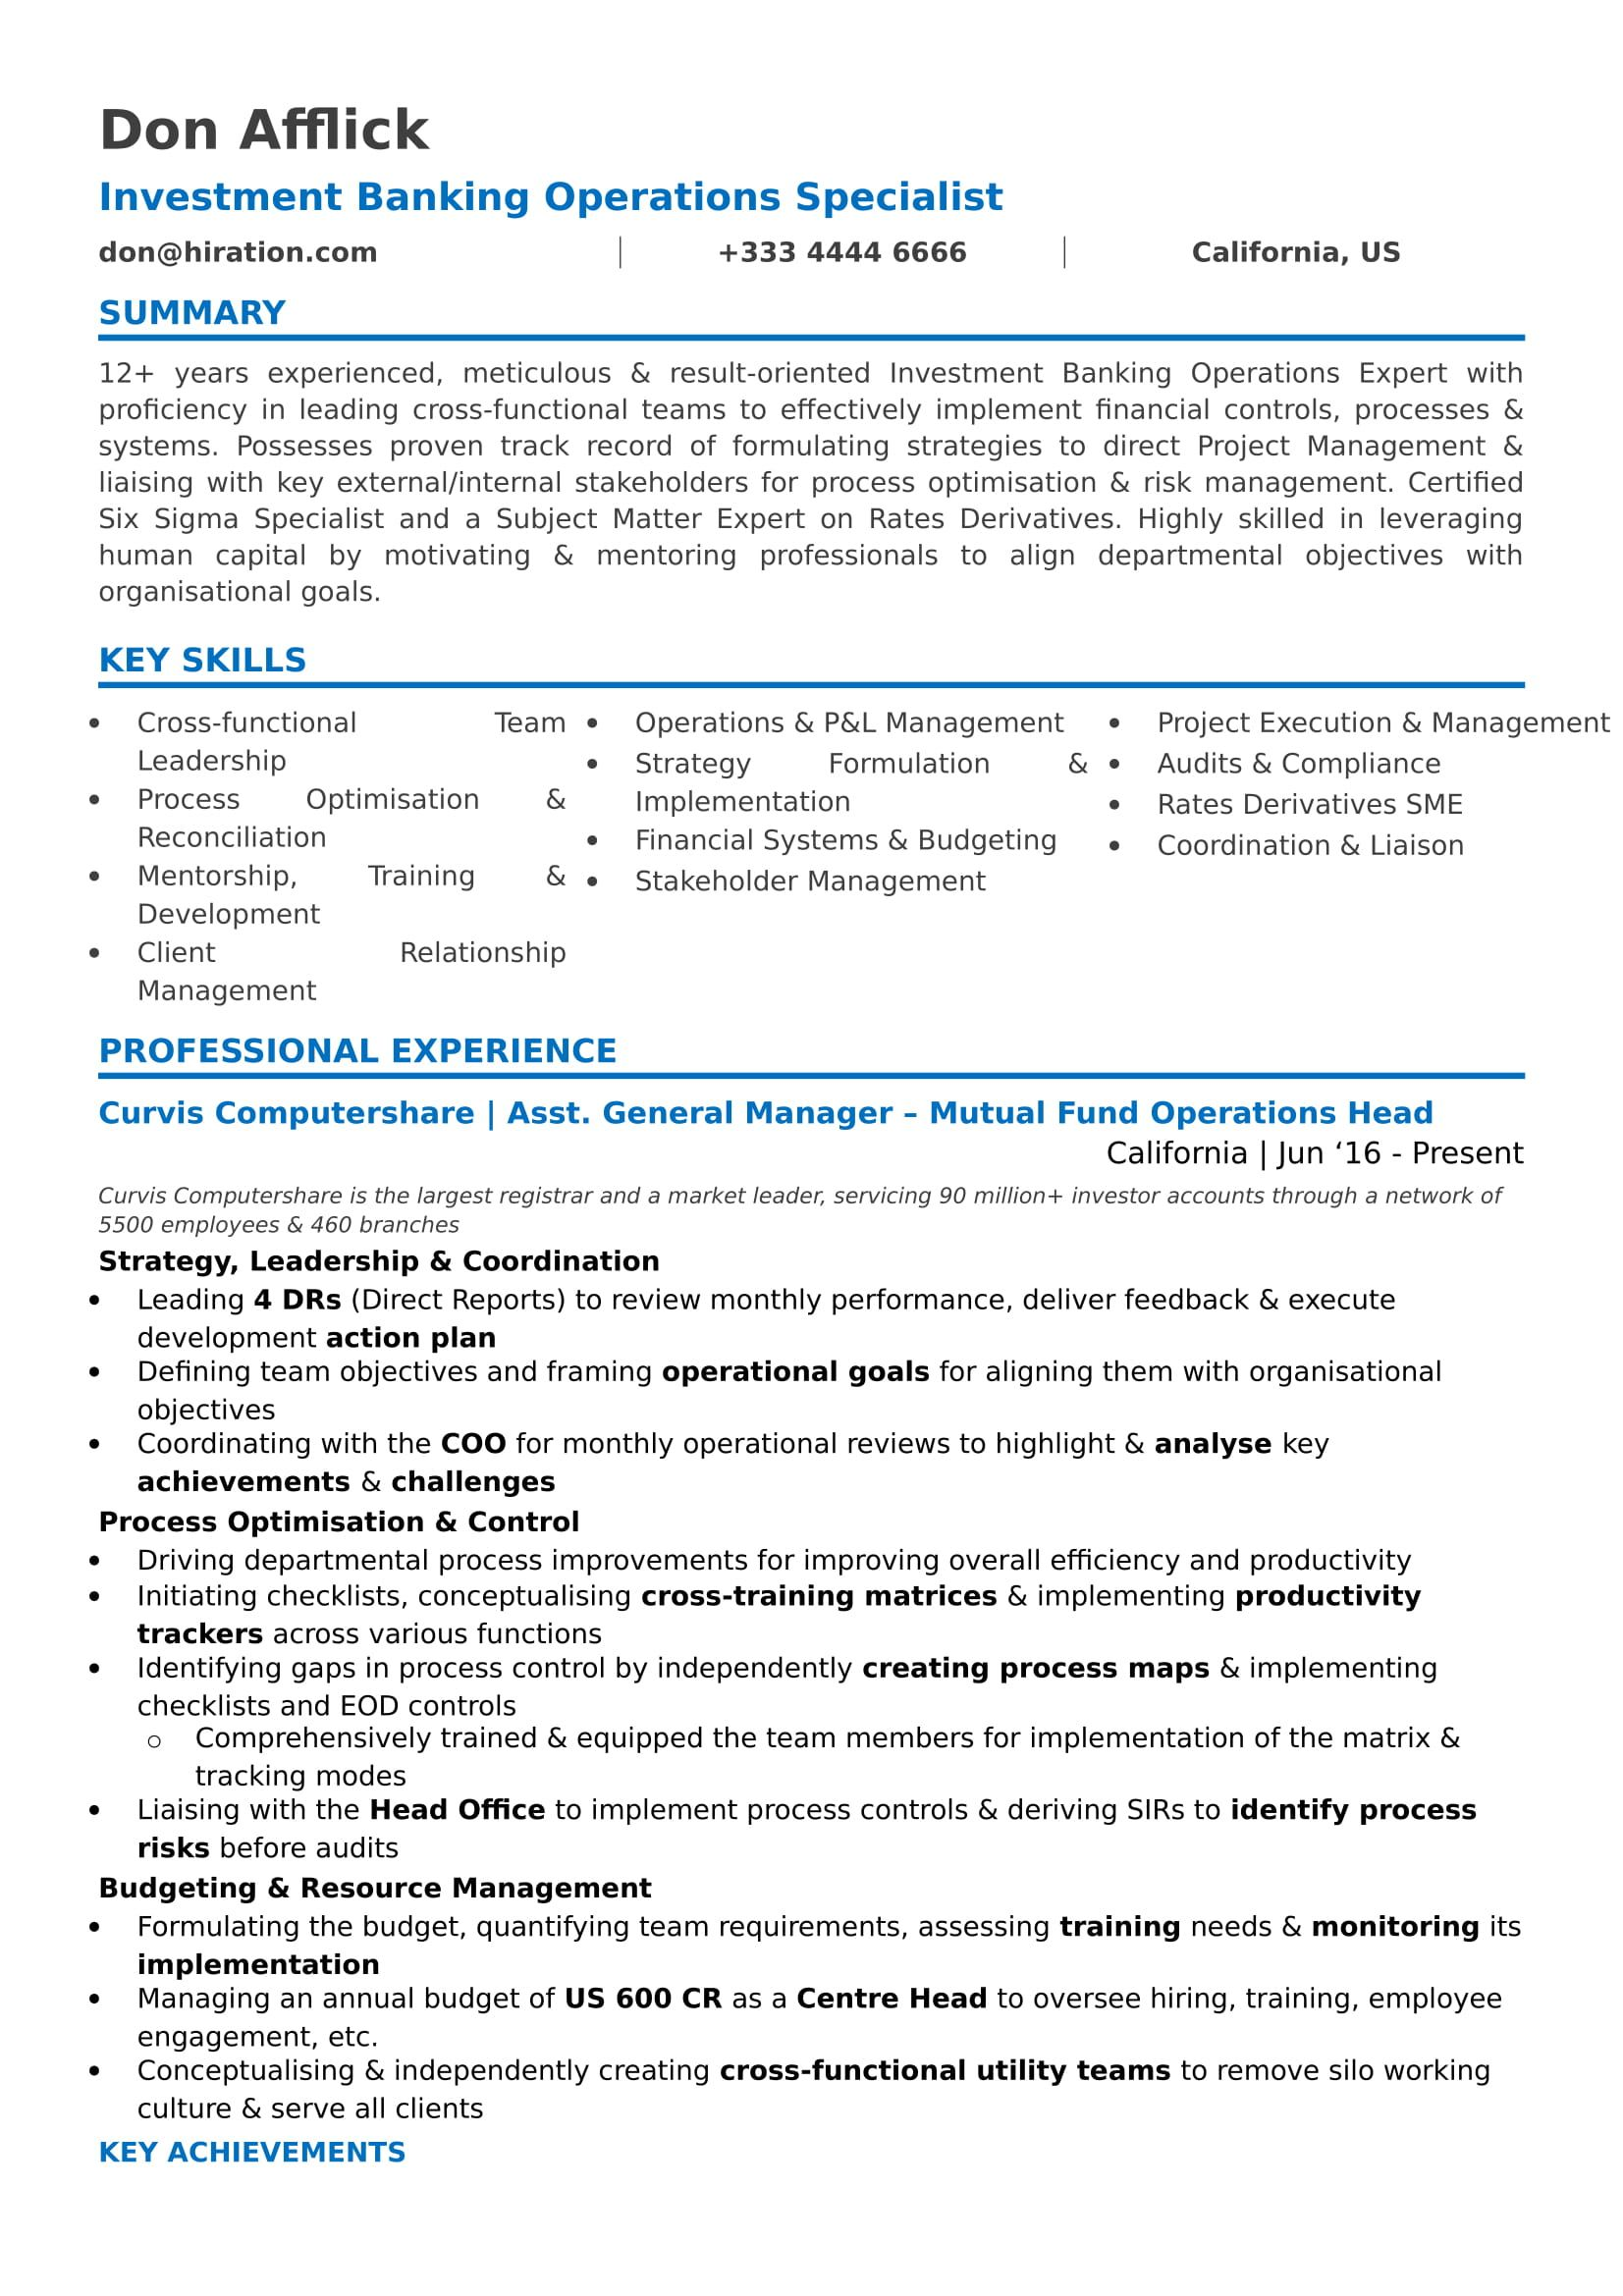 career change resume guide to for templates hiration rohit mahagaonkar cv talent Resume Career Change Resume Templates